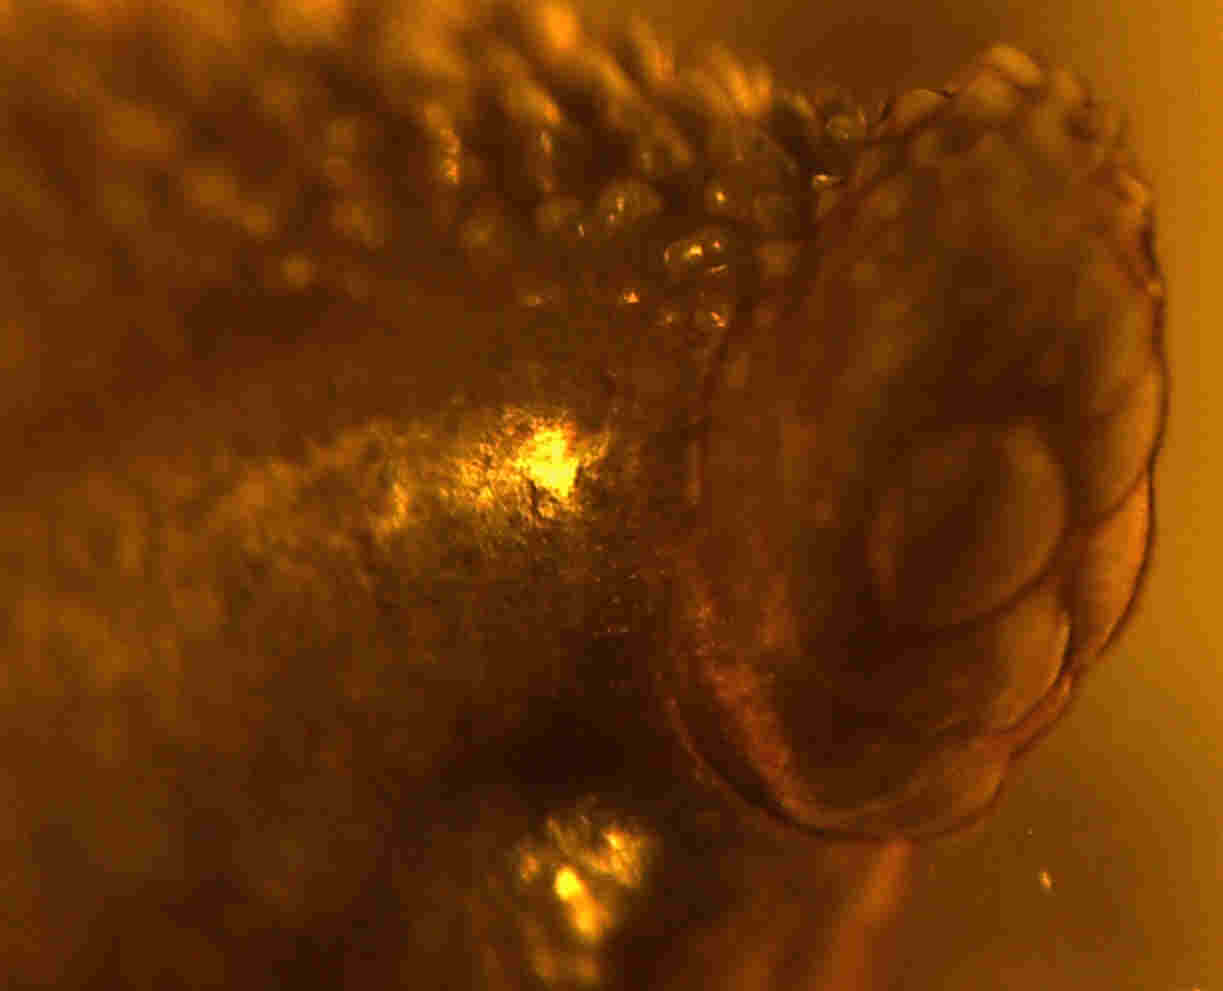 Leech in amber offers chance of discovering dinosaur DNA